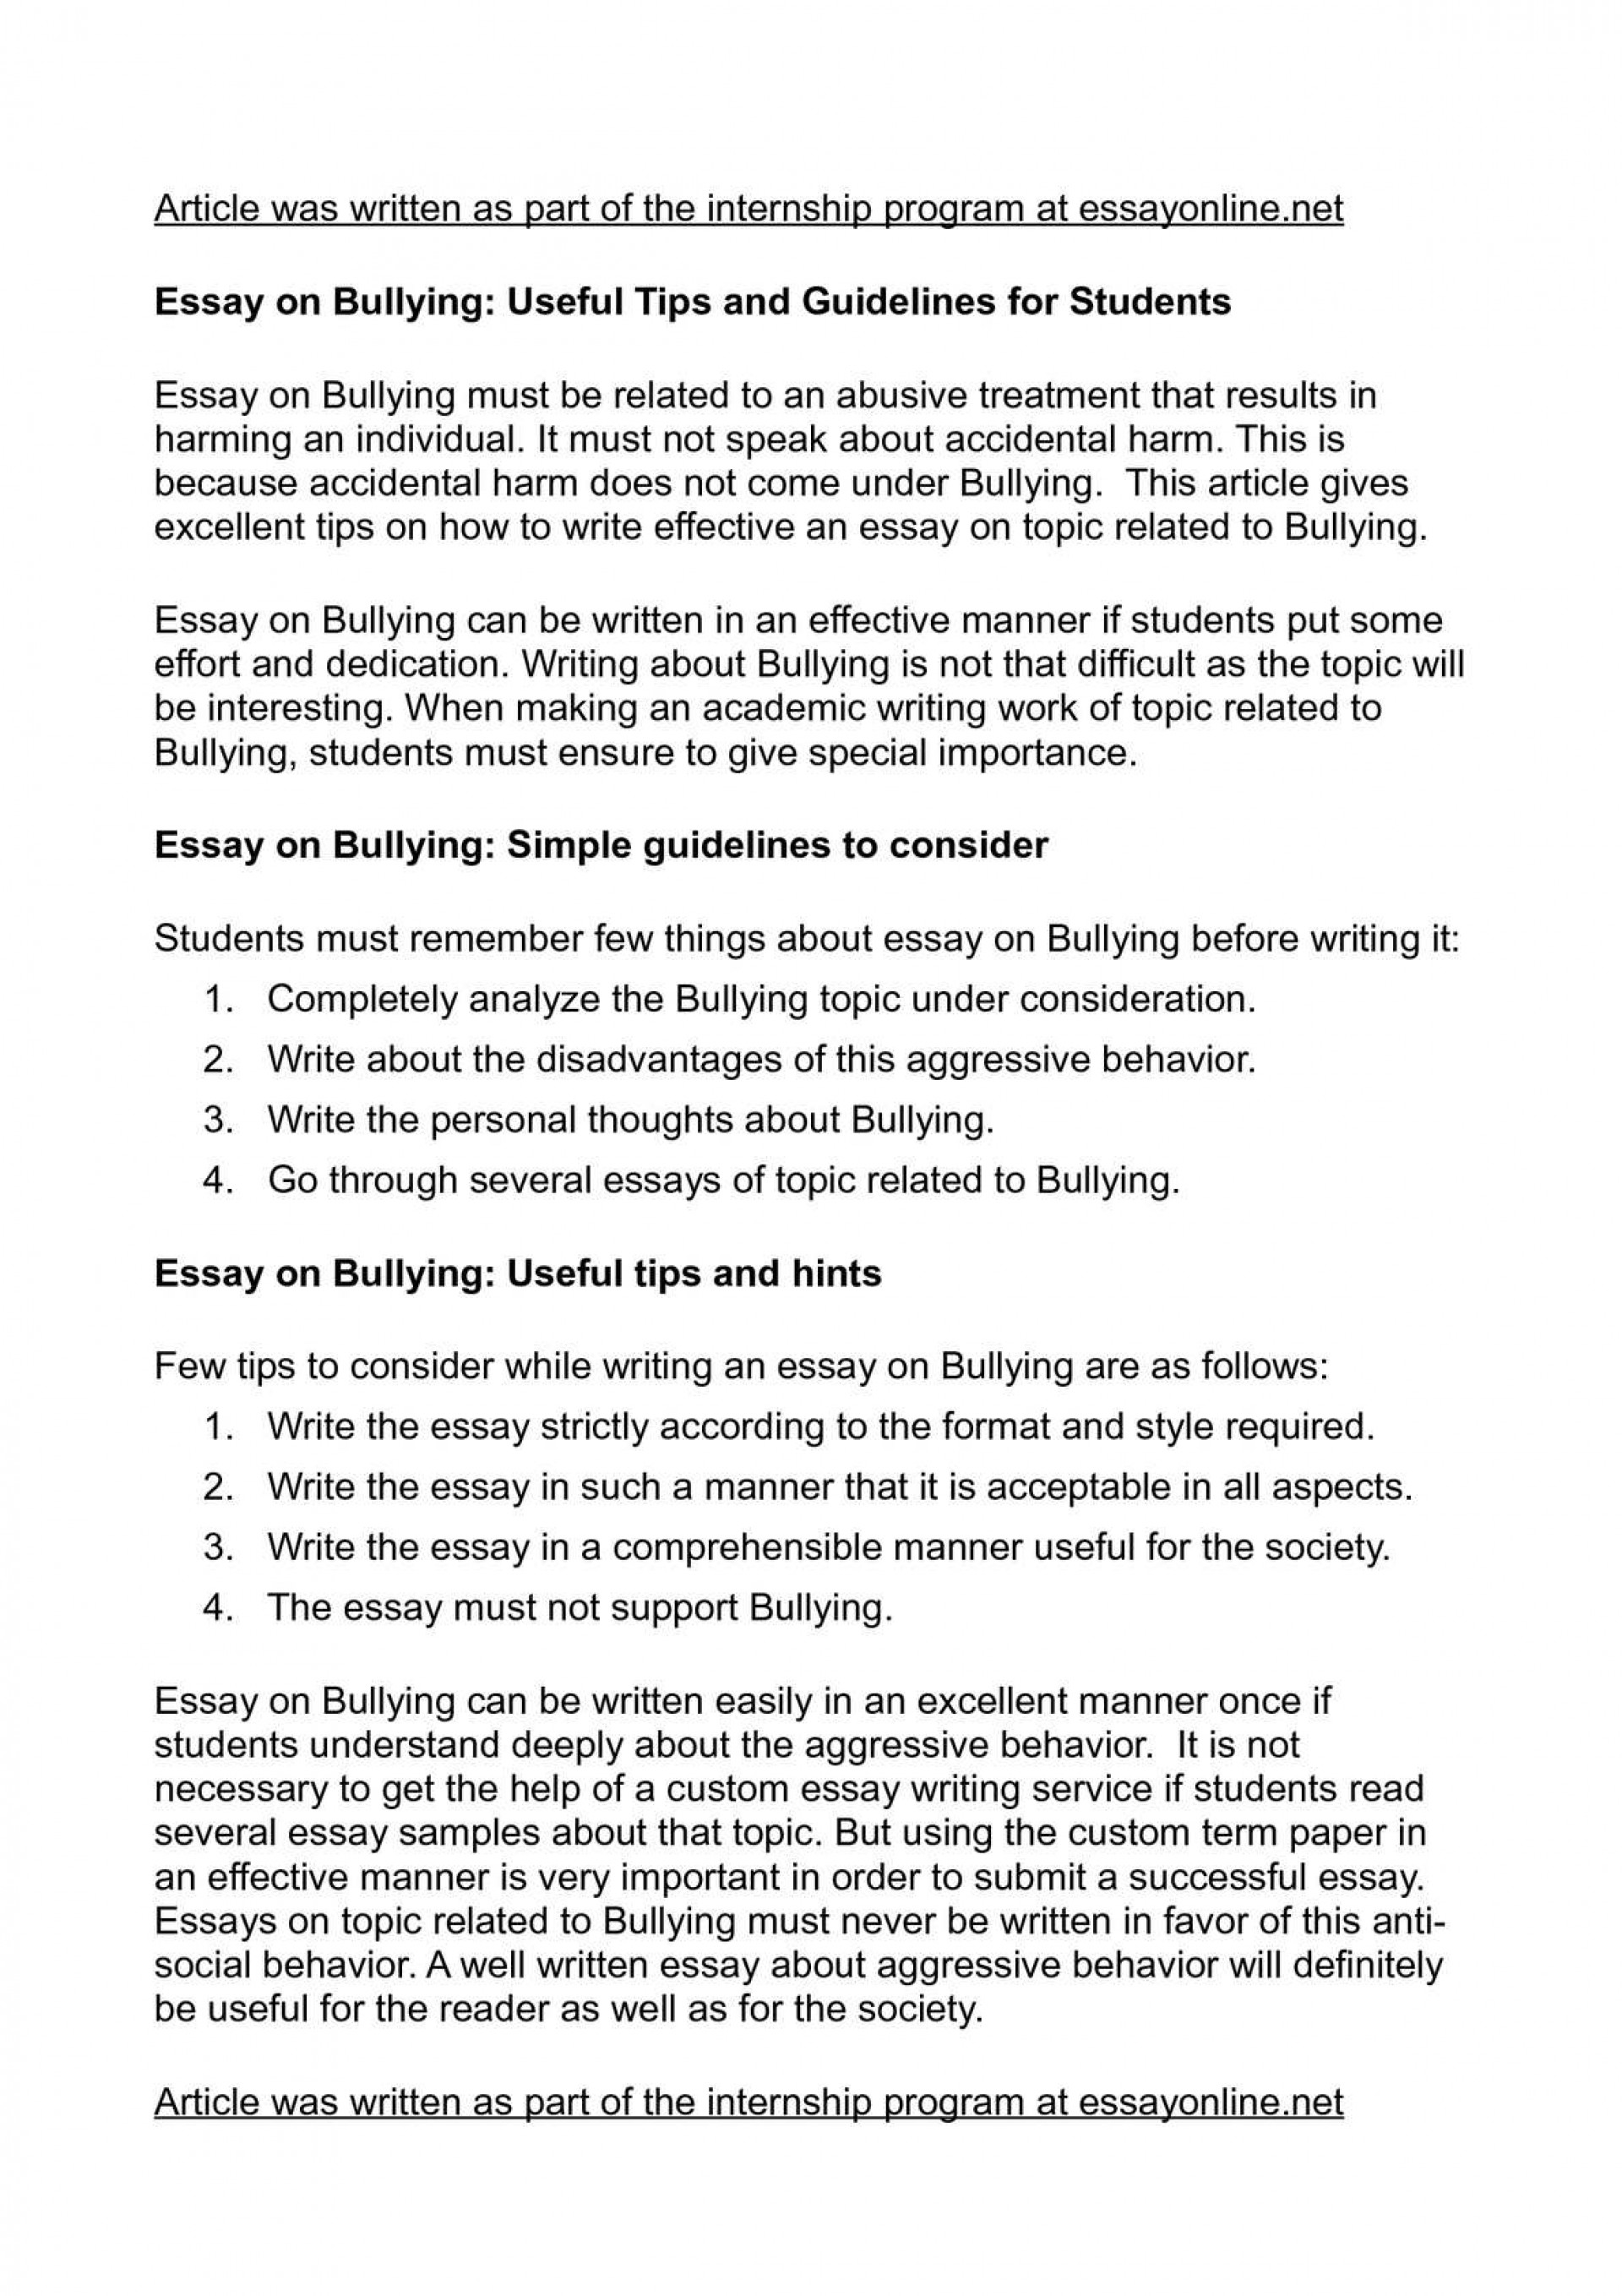 008 Essay About Bullying P1 Best Introduction In School Argumentative Brainly 1920